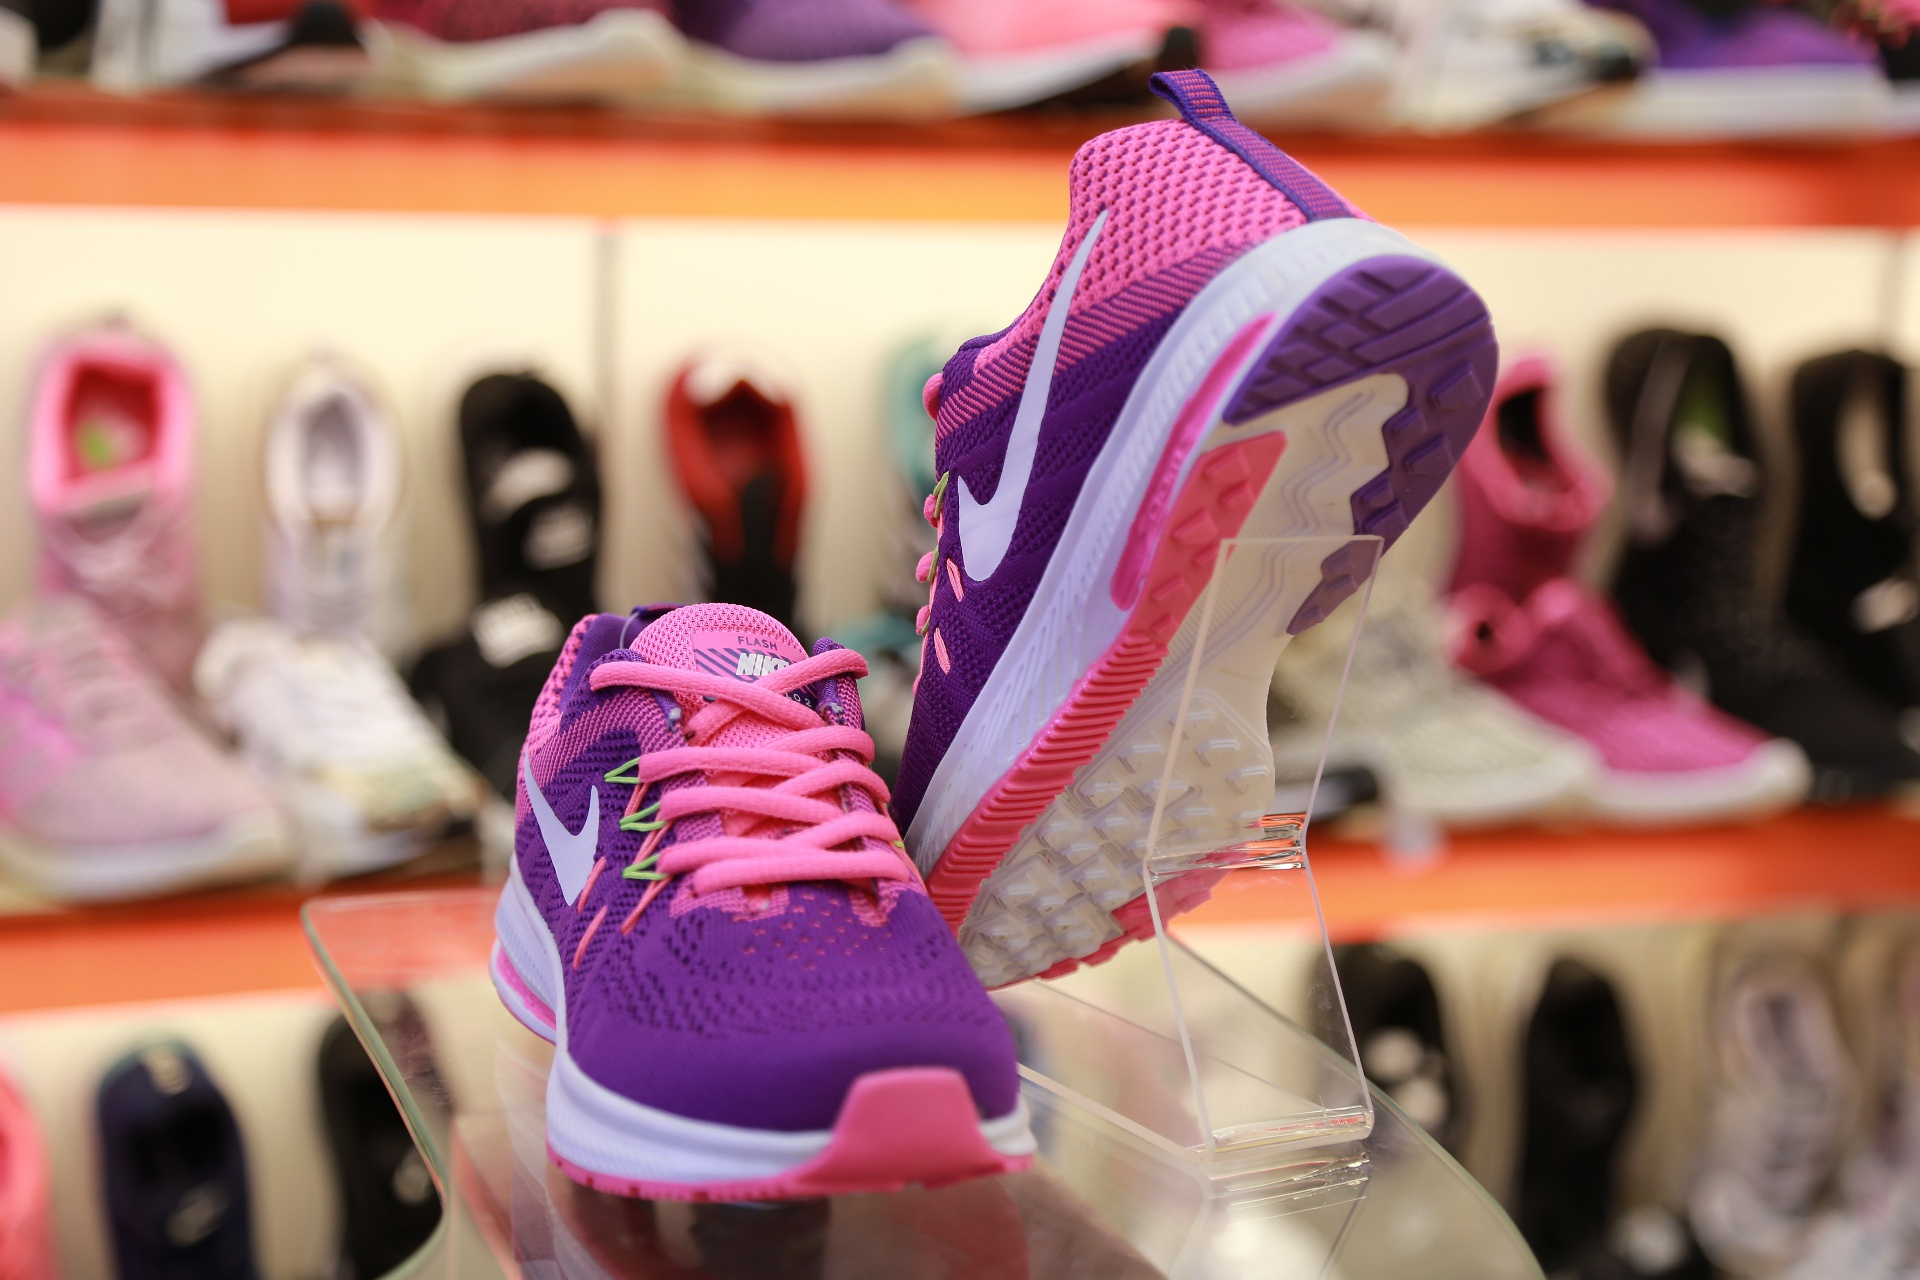 GIÀY THỂ THAO NIKE ZOOM